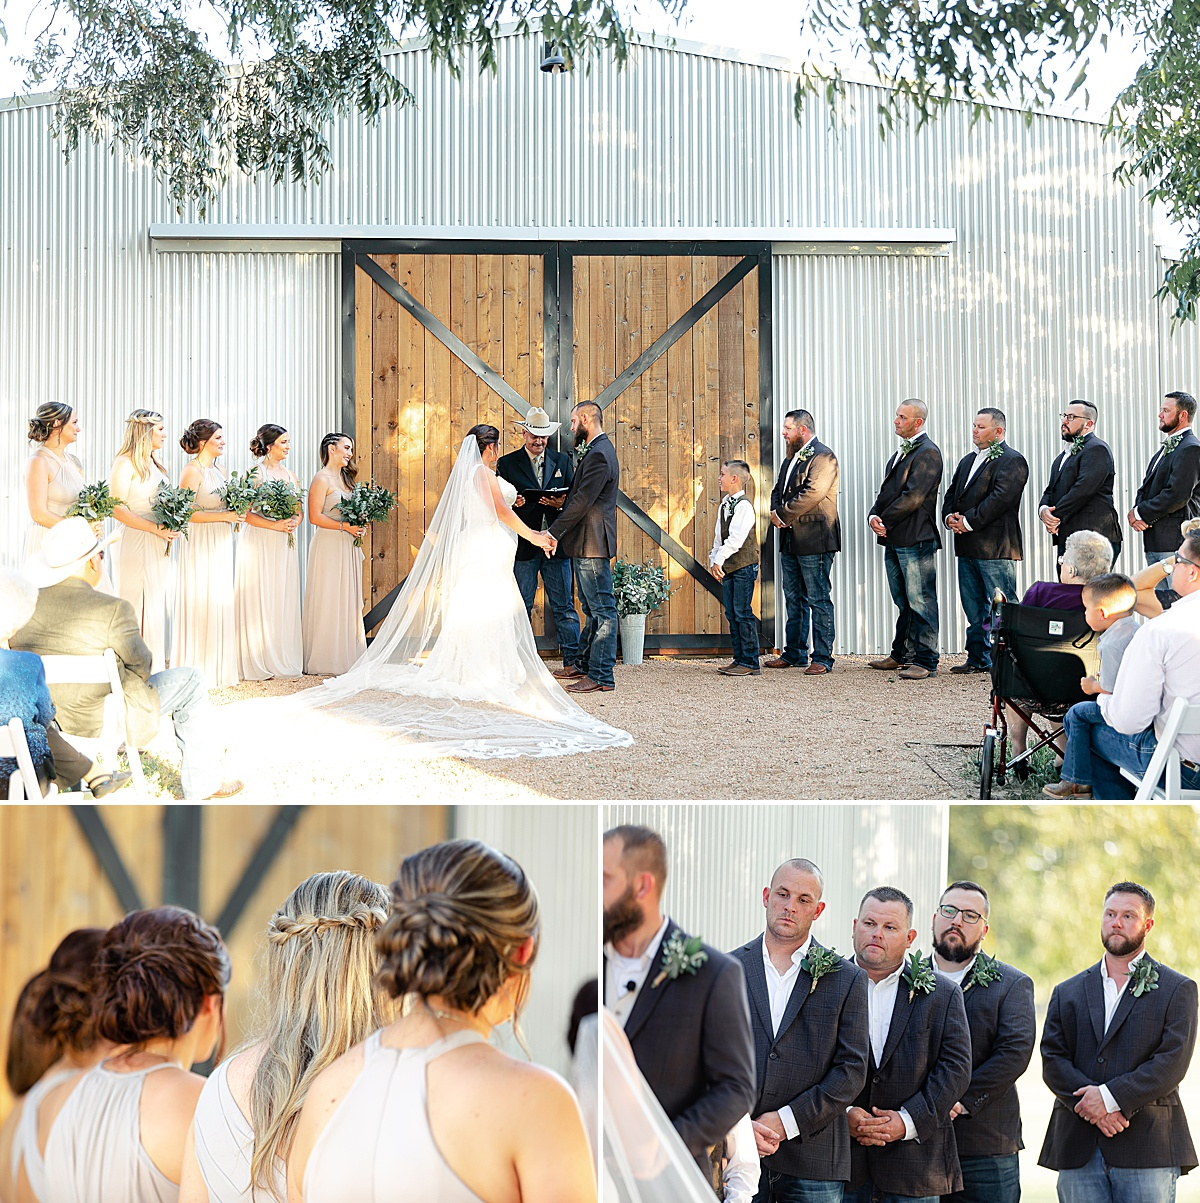 Rustic-Texas-Wedding-Hollow-Creek-Ranch-Carly-Barton-Photography_0128.jpg